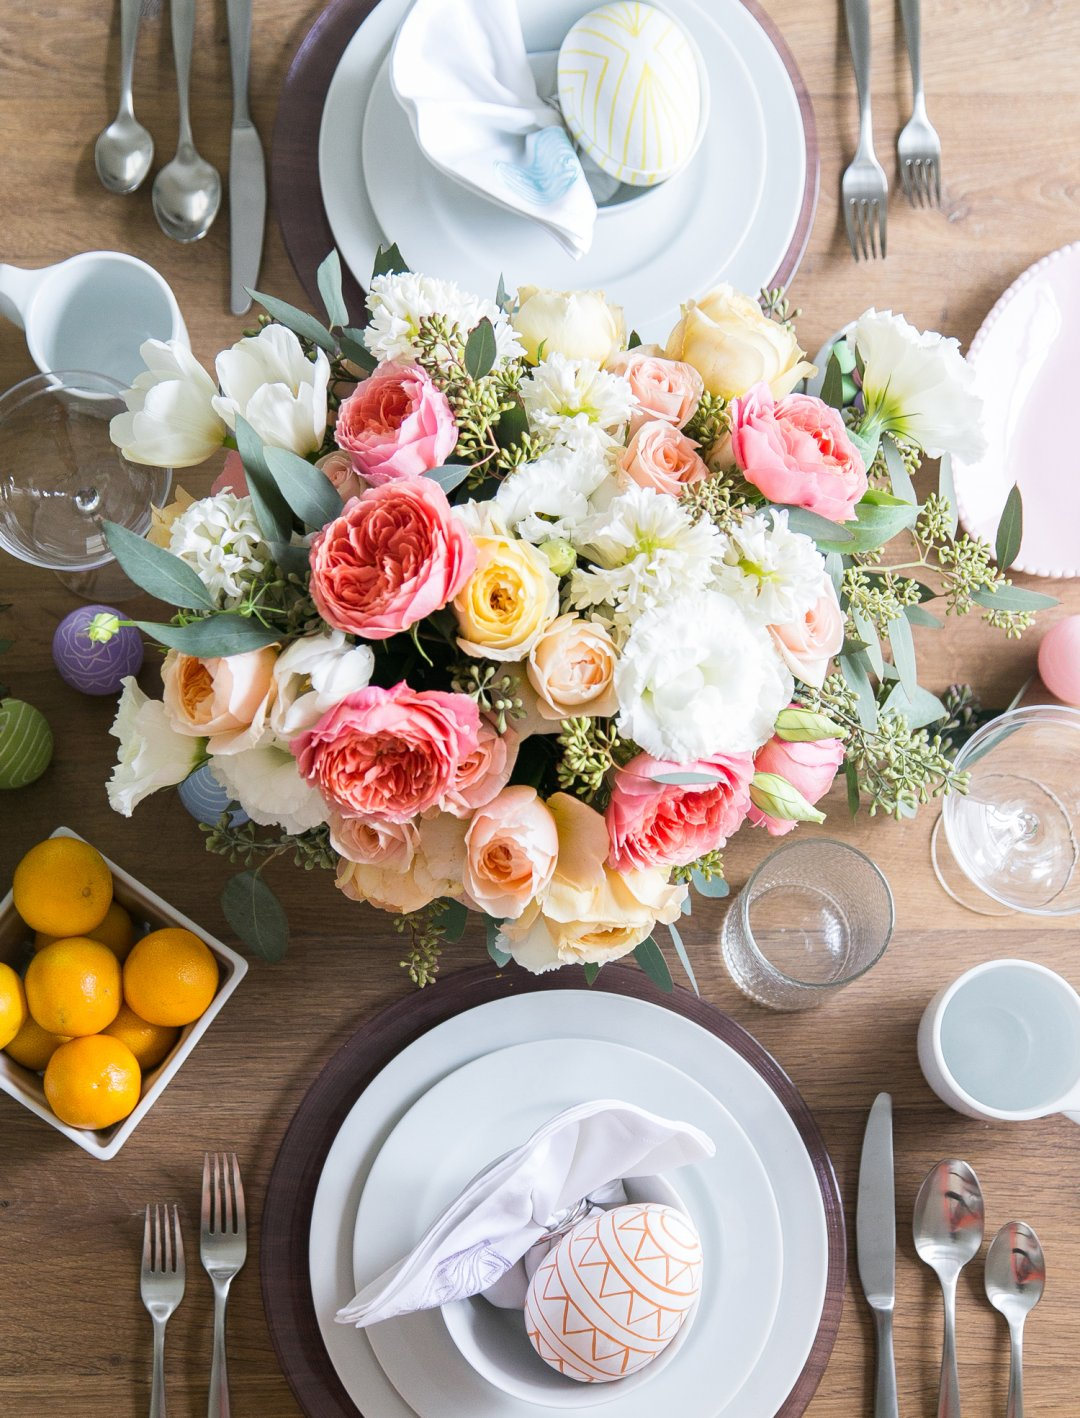 Floral centerpiece in an Easter tablescape